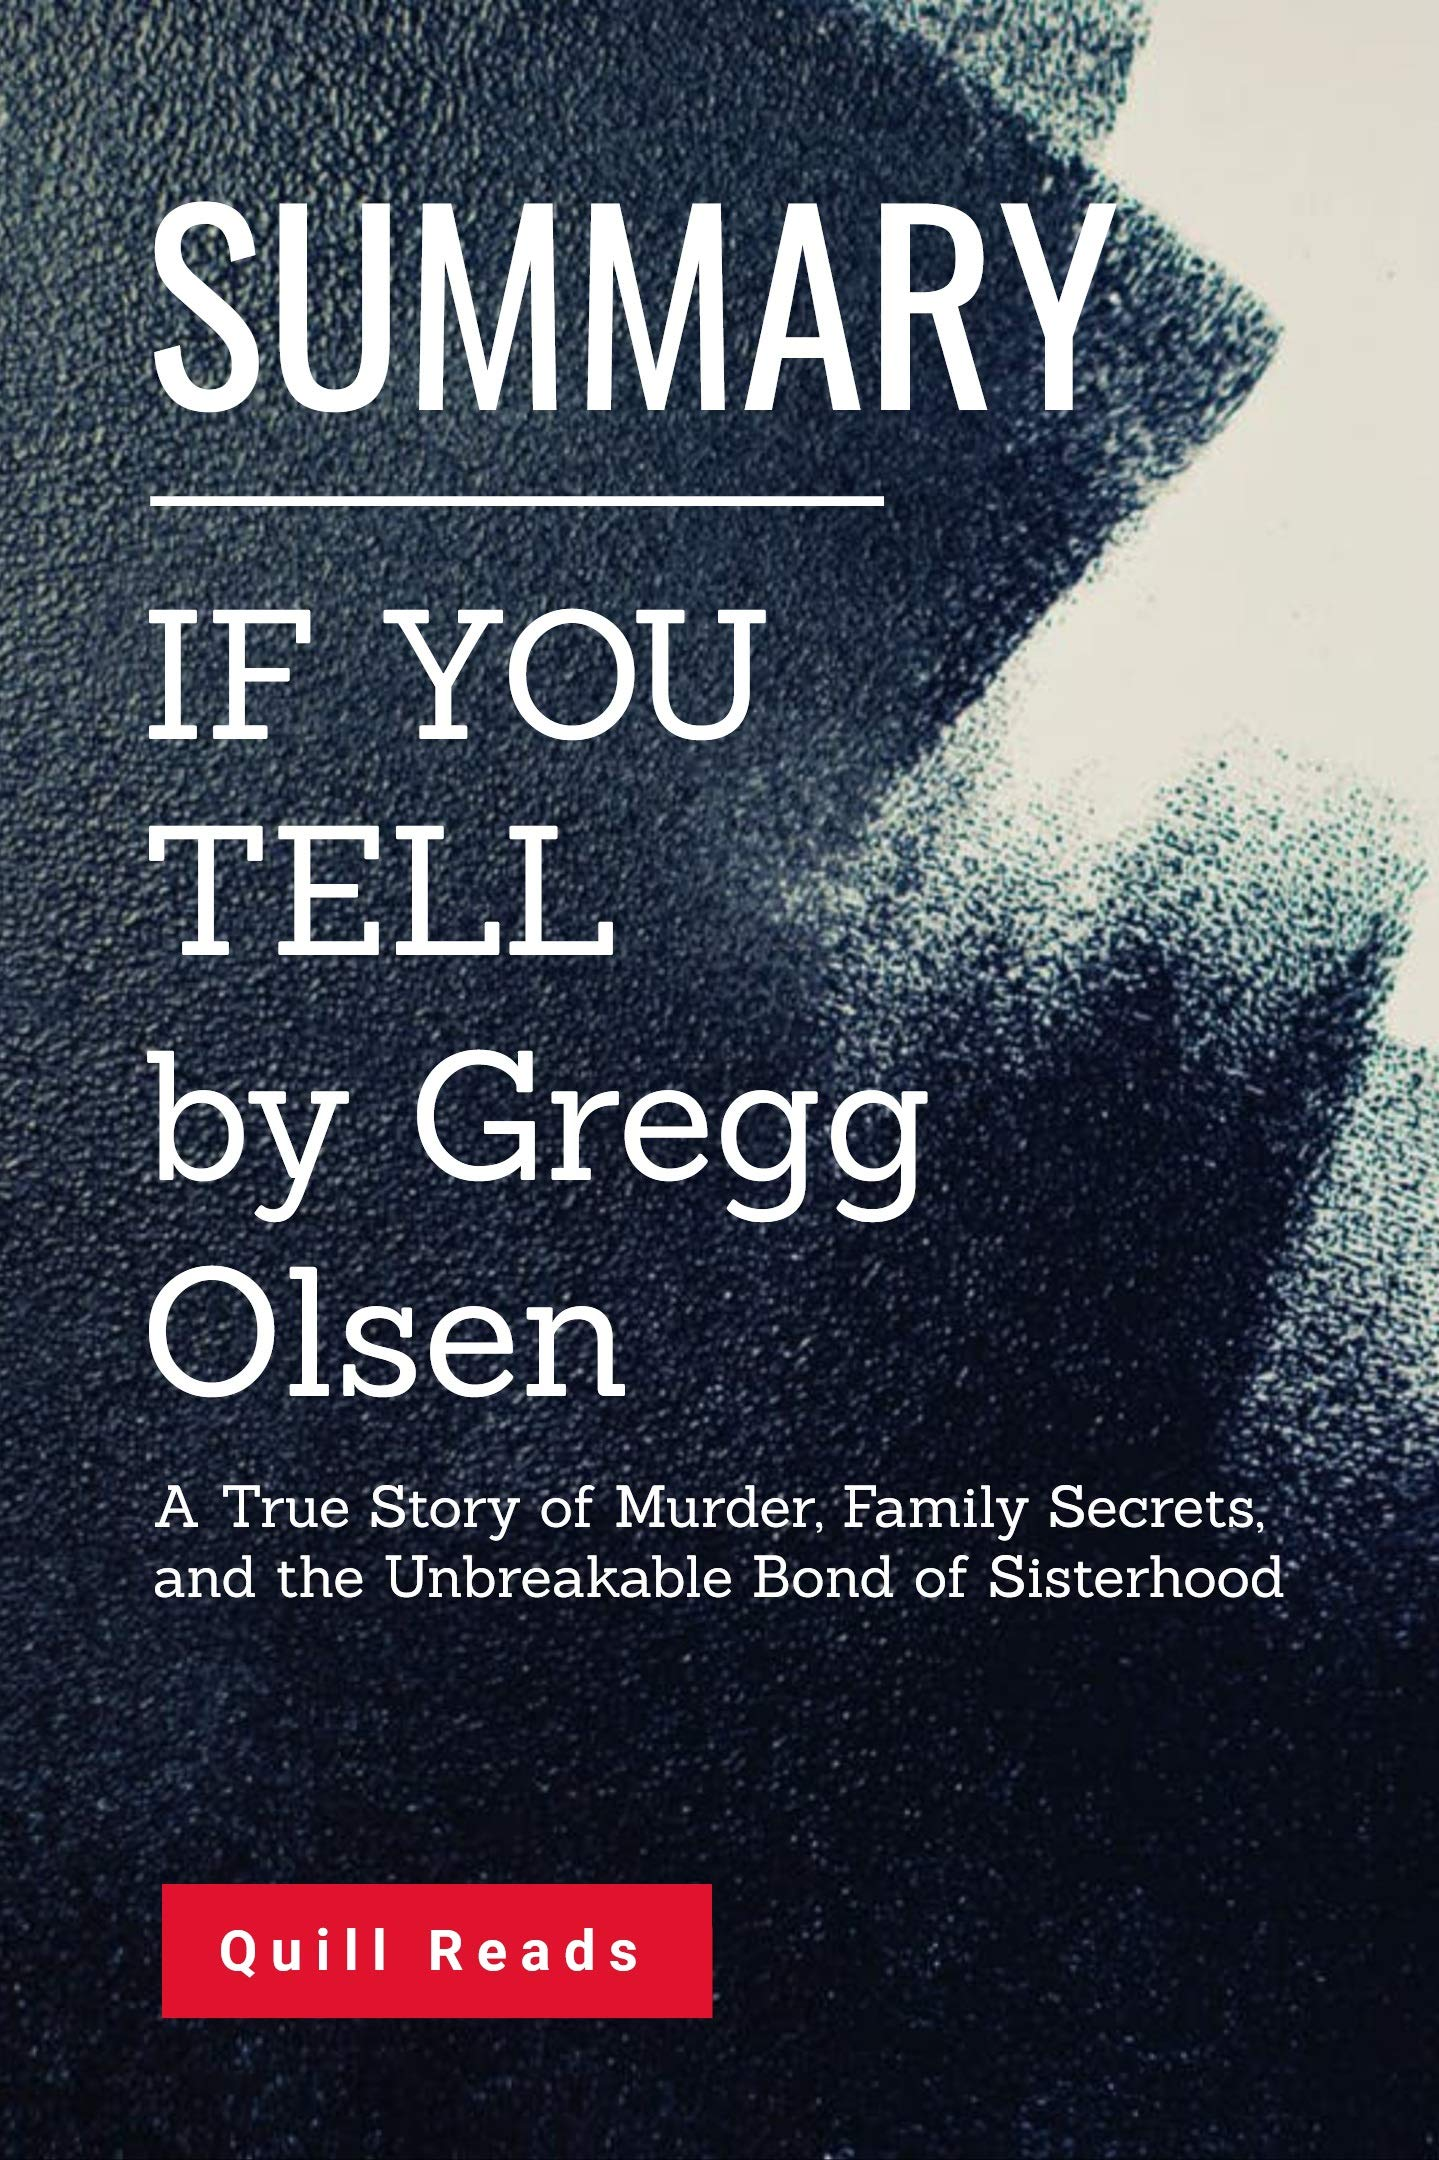 Summary of If You Tell by Gregg Olsen: A True Story of Murder, Family Secrets, and the Unbreakable Bond of Sisterhood